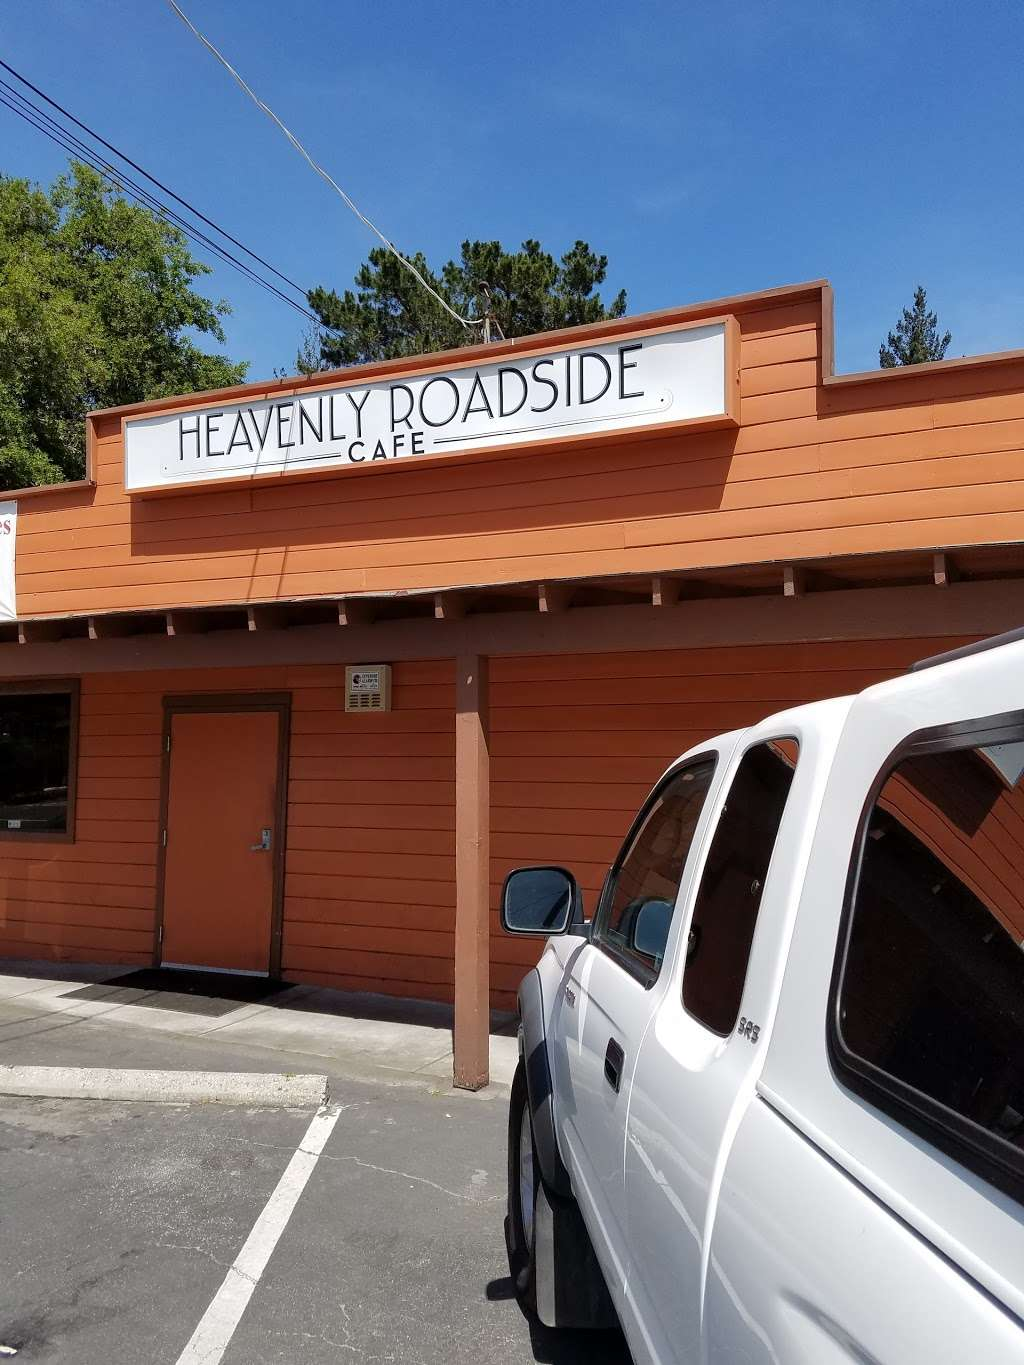 Heavenly Roadside Café - cafe  | Photo 3 of 10 | Address: 1210 Mt Hermon Rd, Scotts Valley, CA 95066, USA | Phone: (831) 335-1210